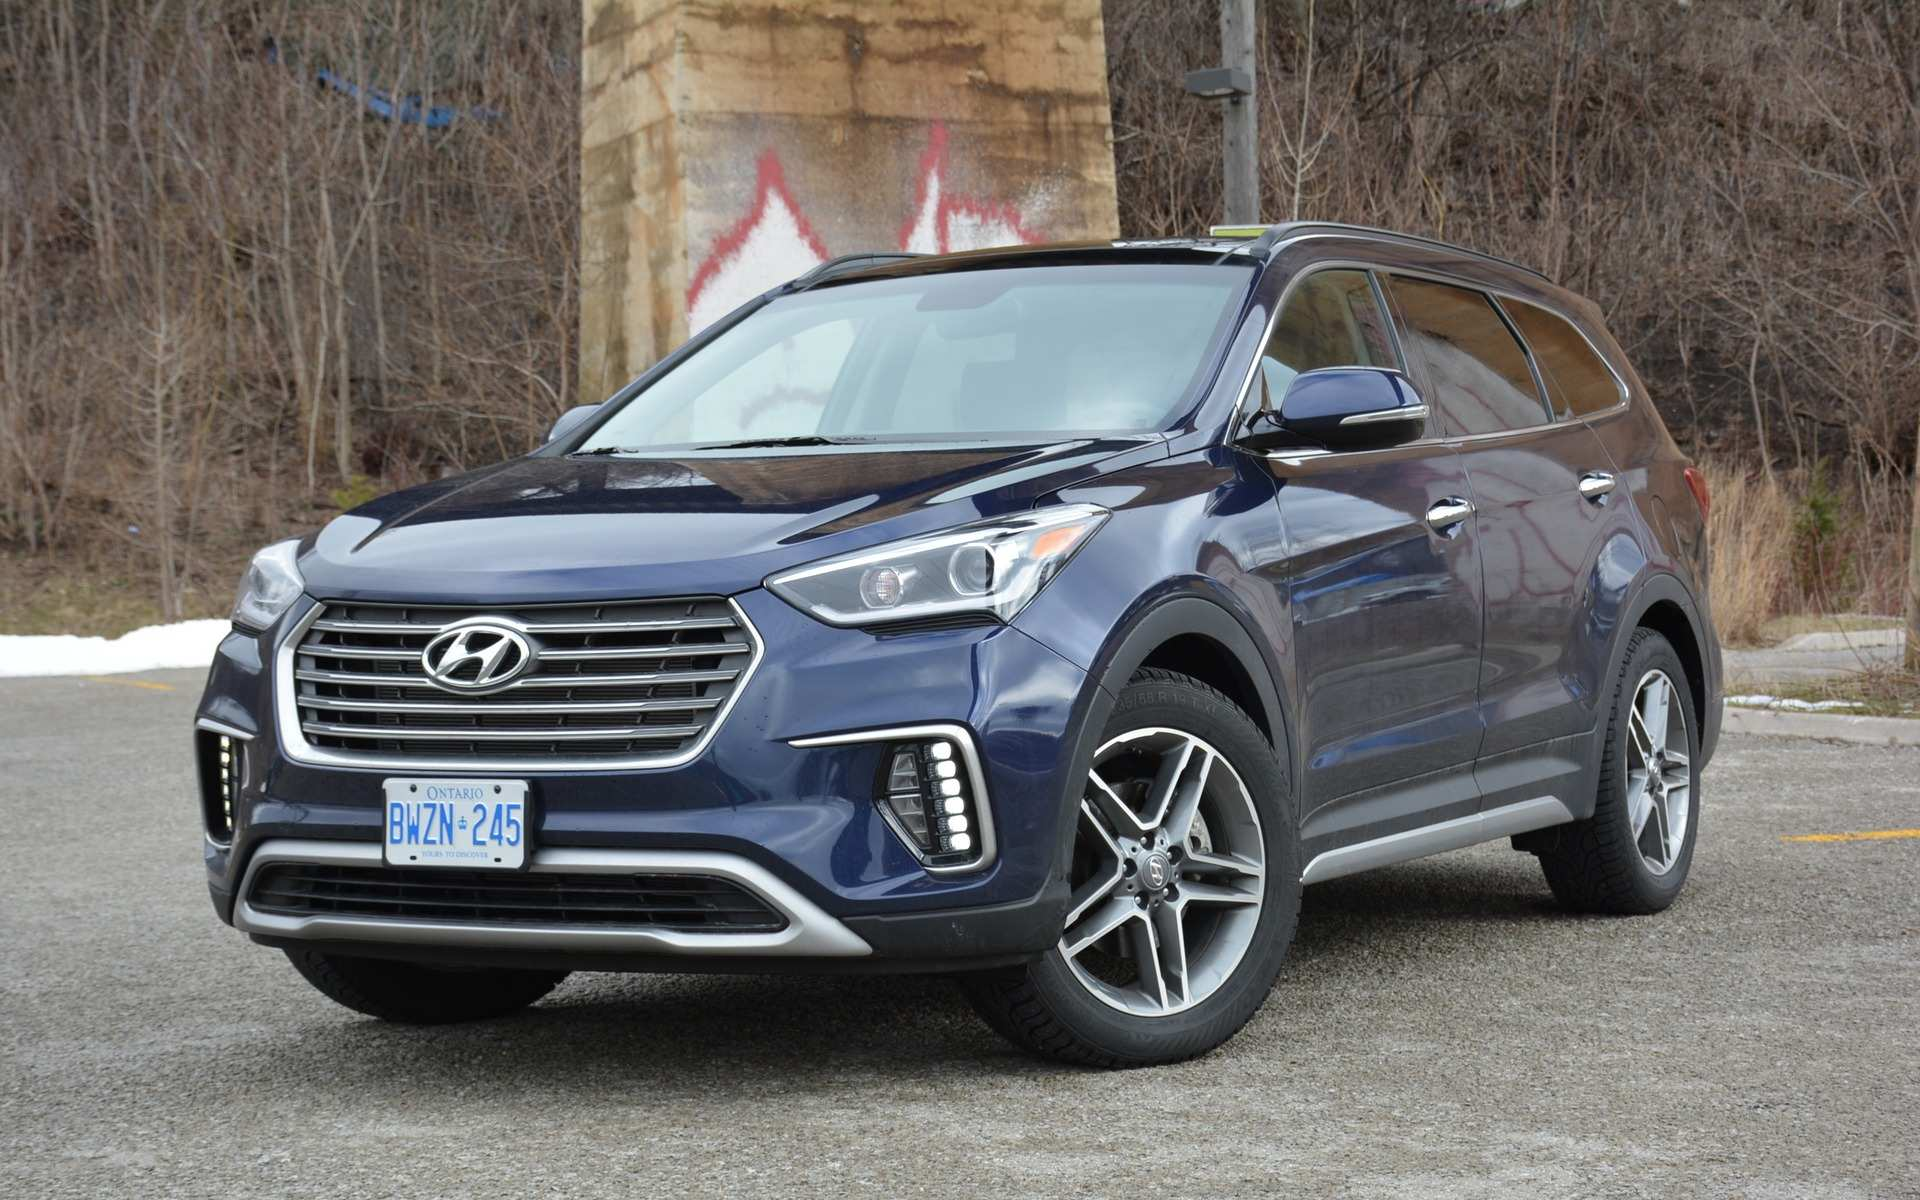 11 New 2020 Hyundai Santa Fe Xl Limited Ultimate Price And Release Date